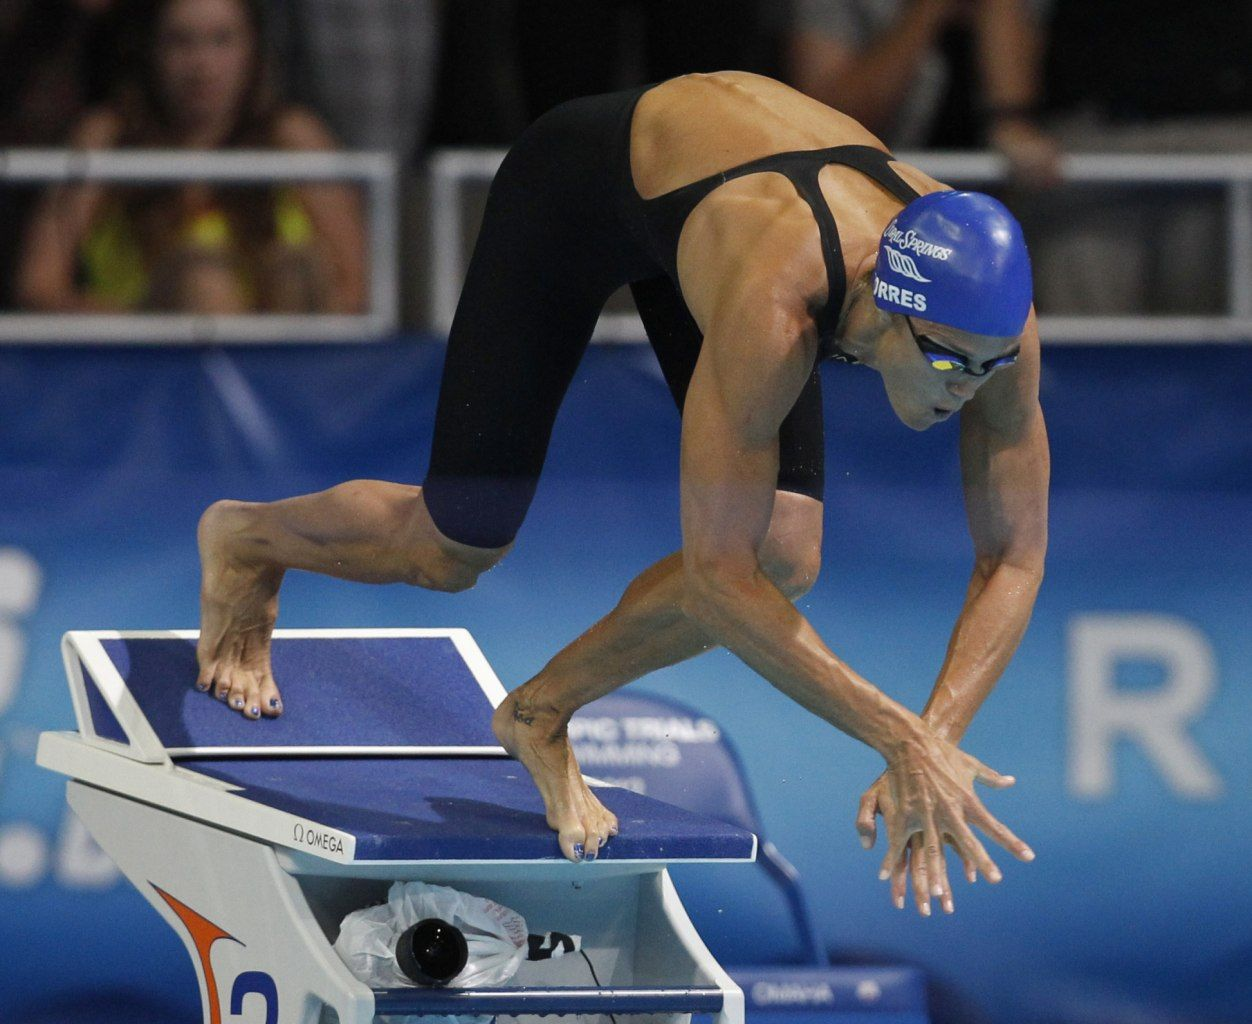 image detail for dara torres leaves the starting block during the womens 50m freestyle race during the us olympic swimming trials in omaha nebraska - Olympic Swimming Starting Blocks